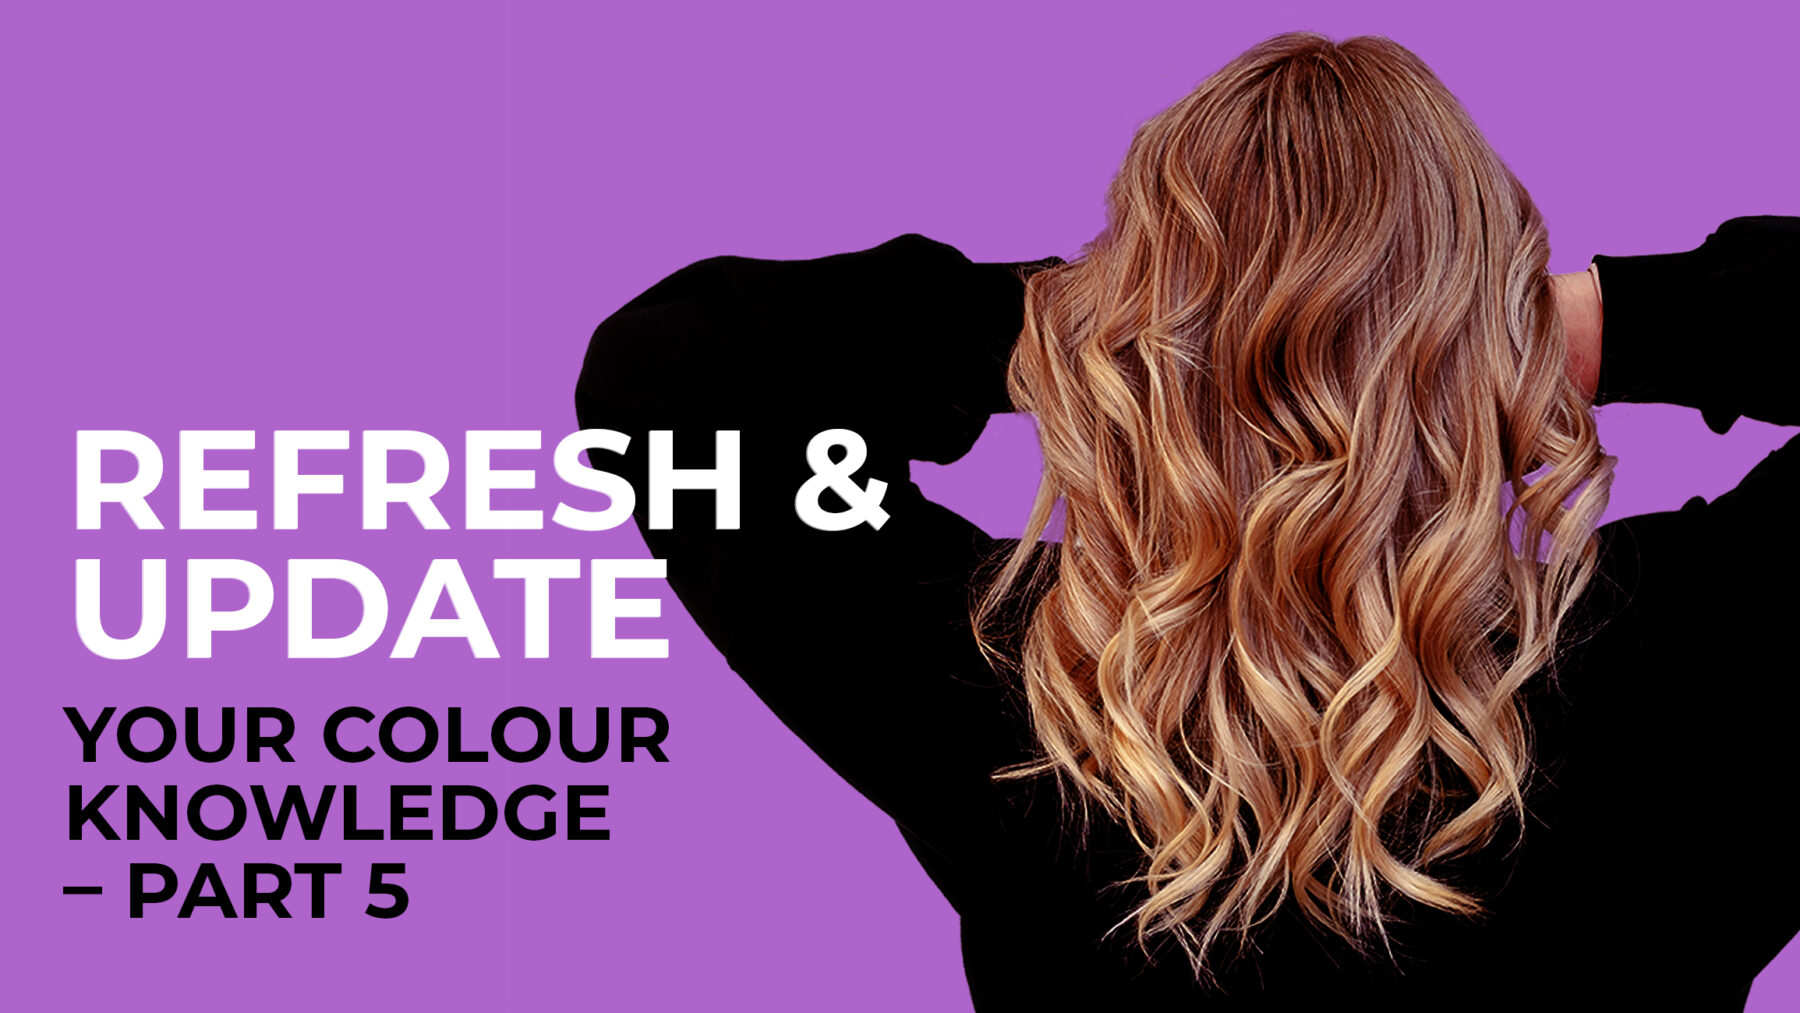 Refresh & Update your Colour Knowledge Part 5